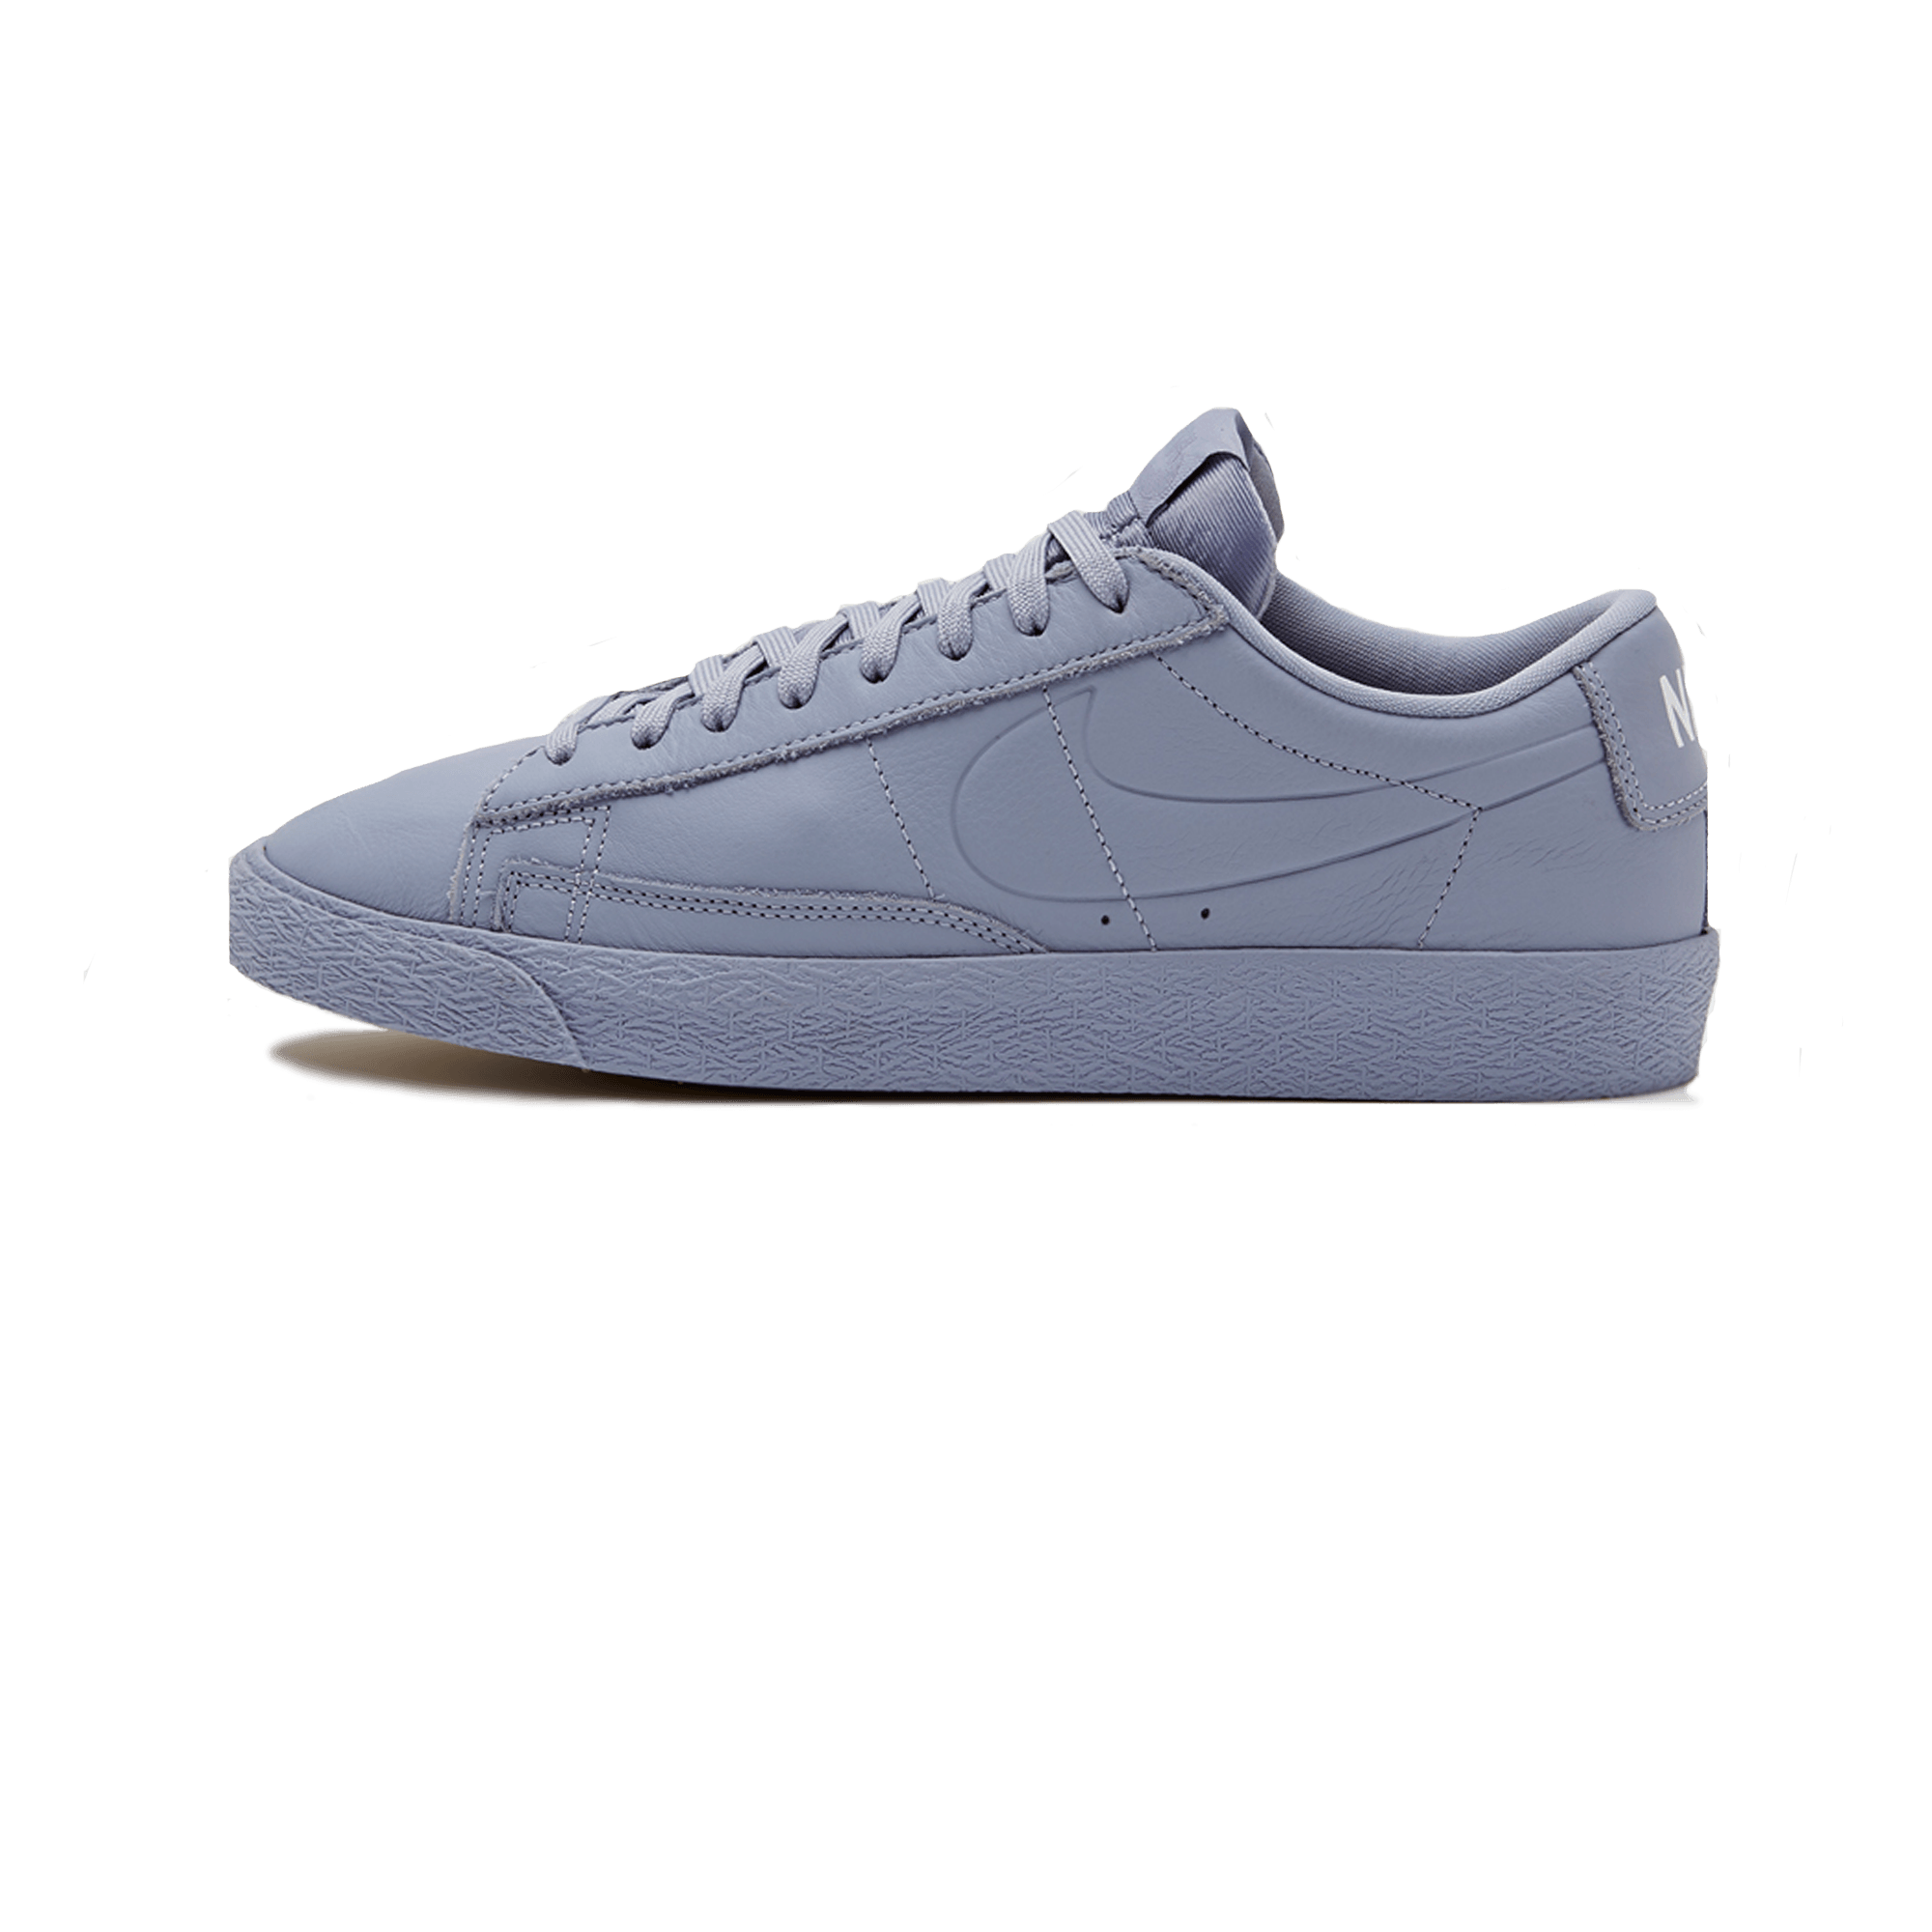 Nike Blazer Faible Philippines Blanc .png